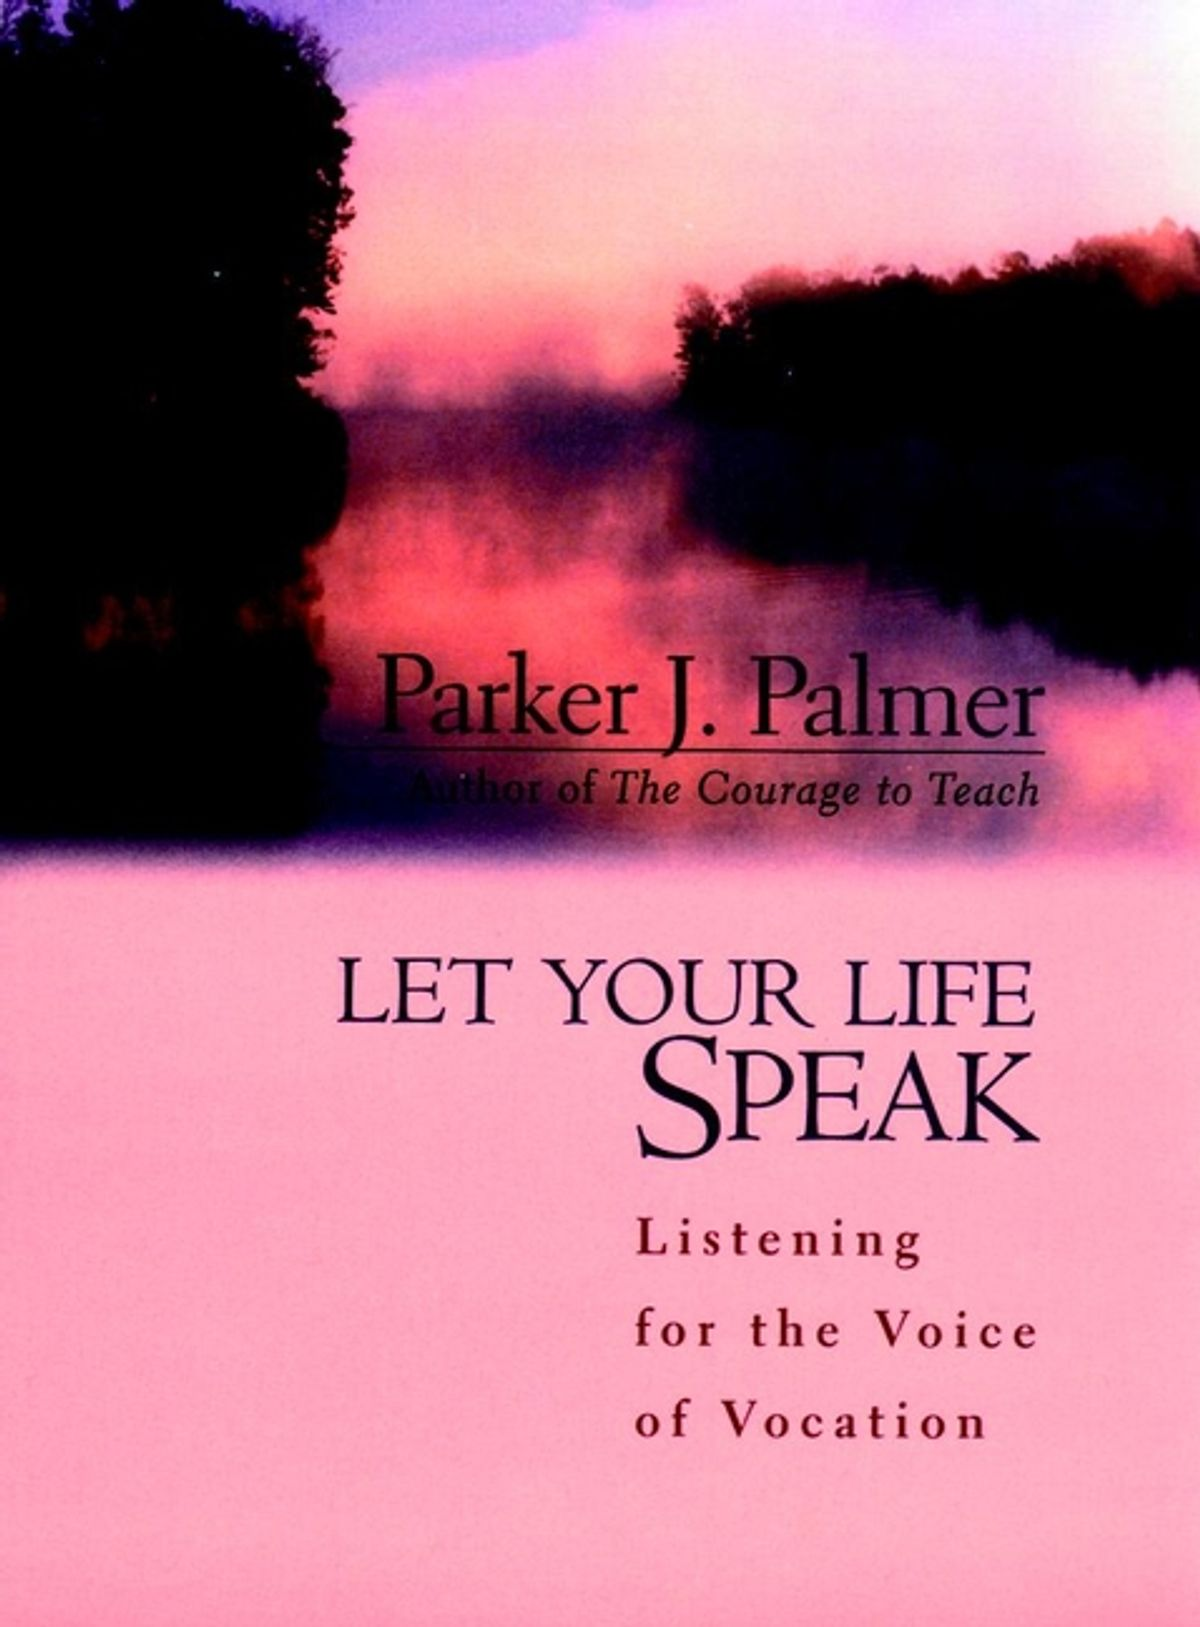 'Let Your Life Speak' by Parker J. Palmer